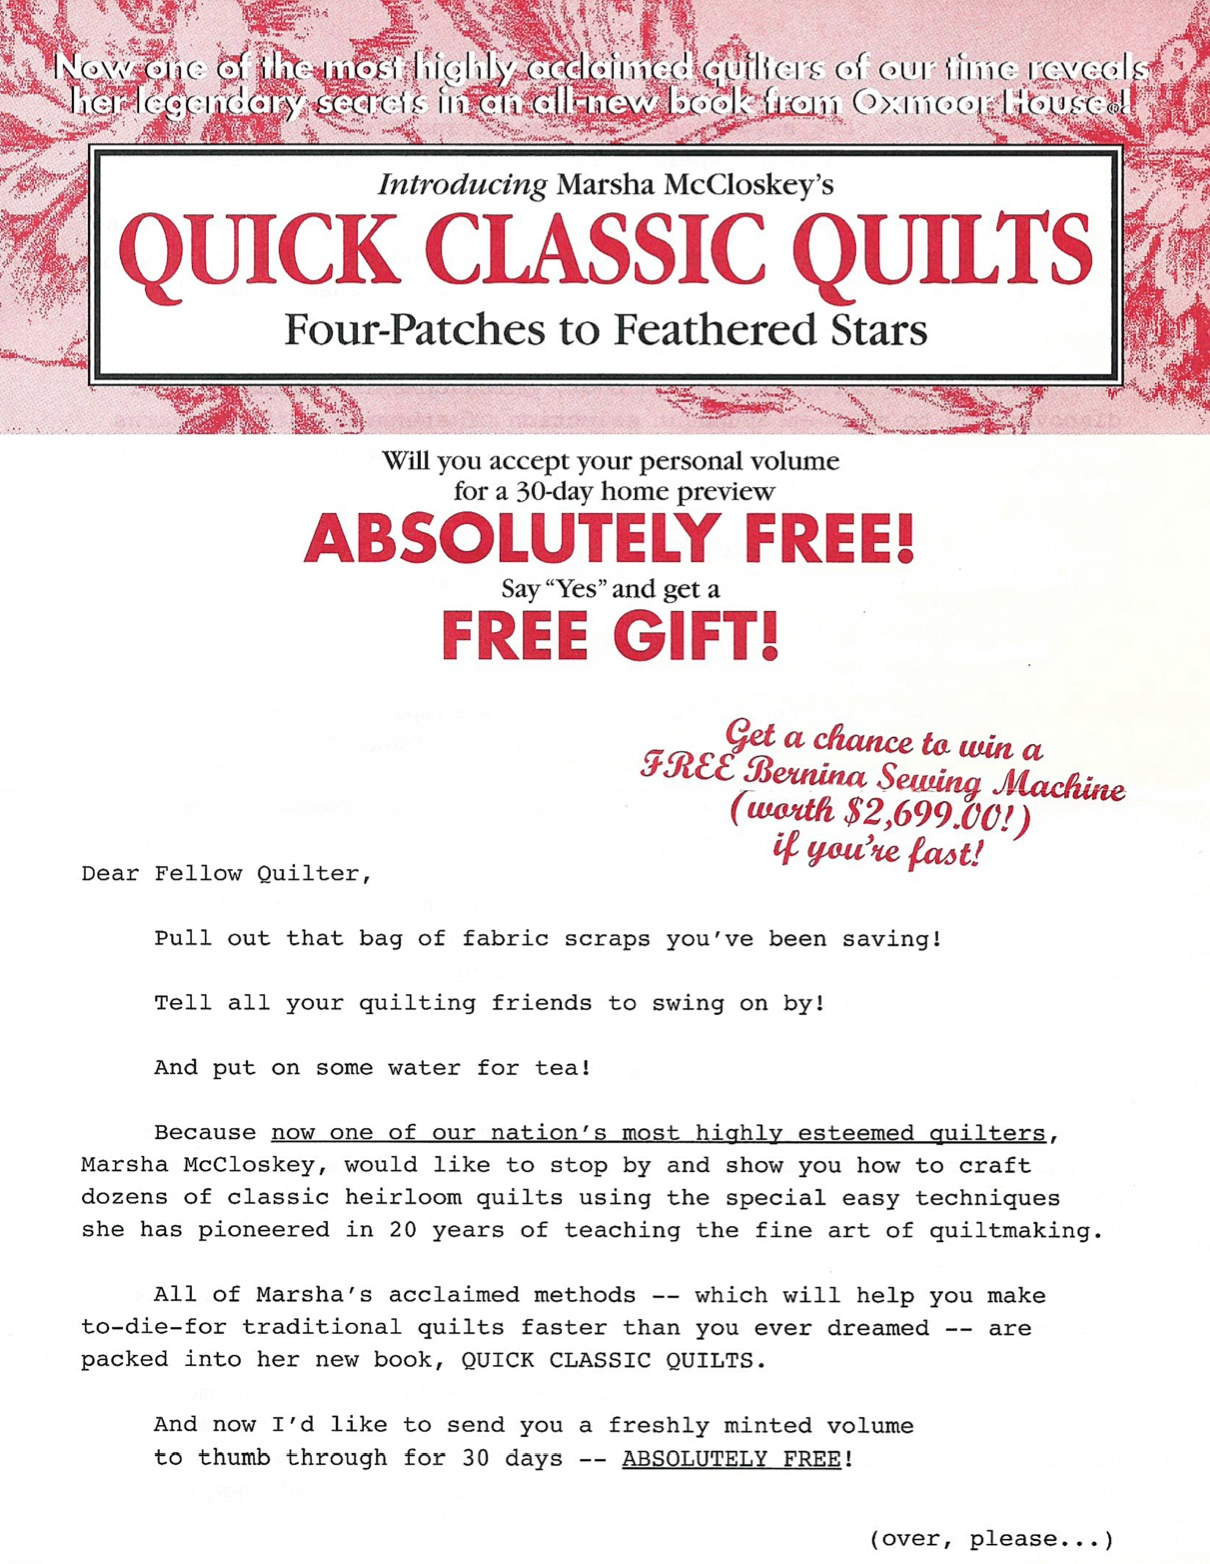 image of Quick Classic Quilts direct mail sales letter page 1